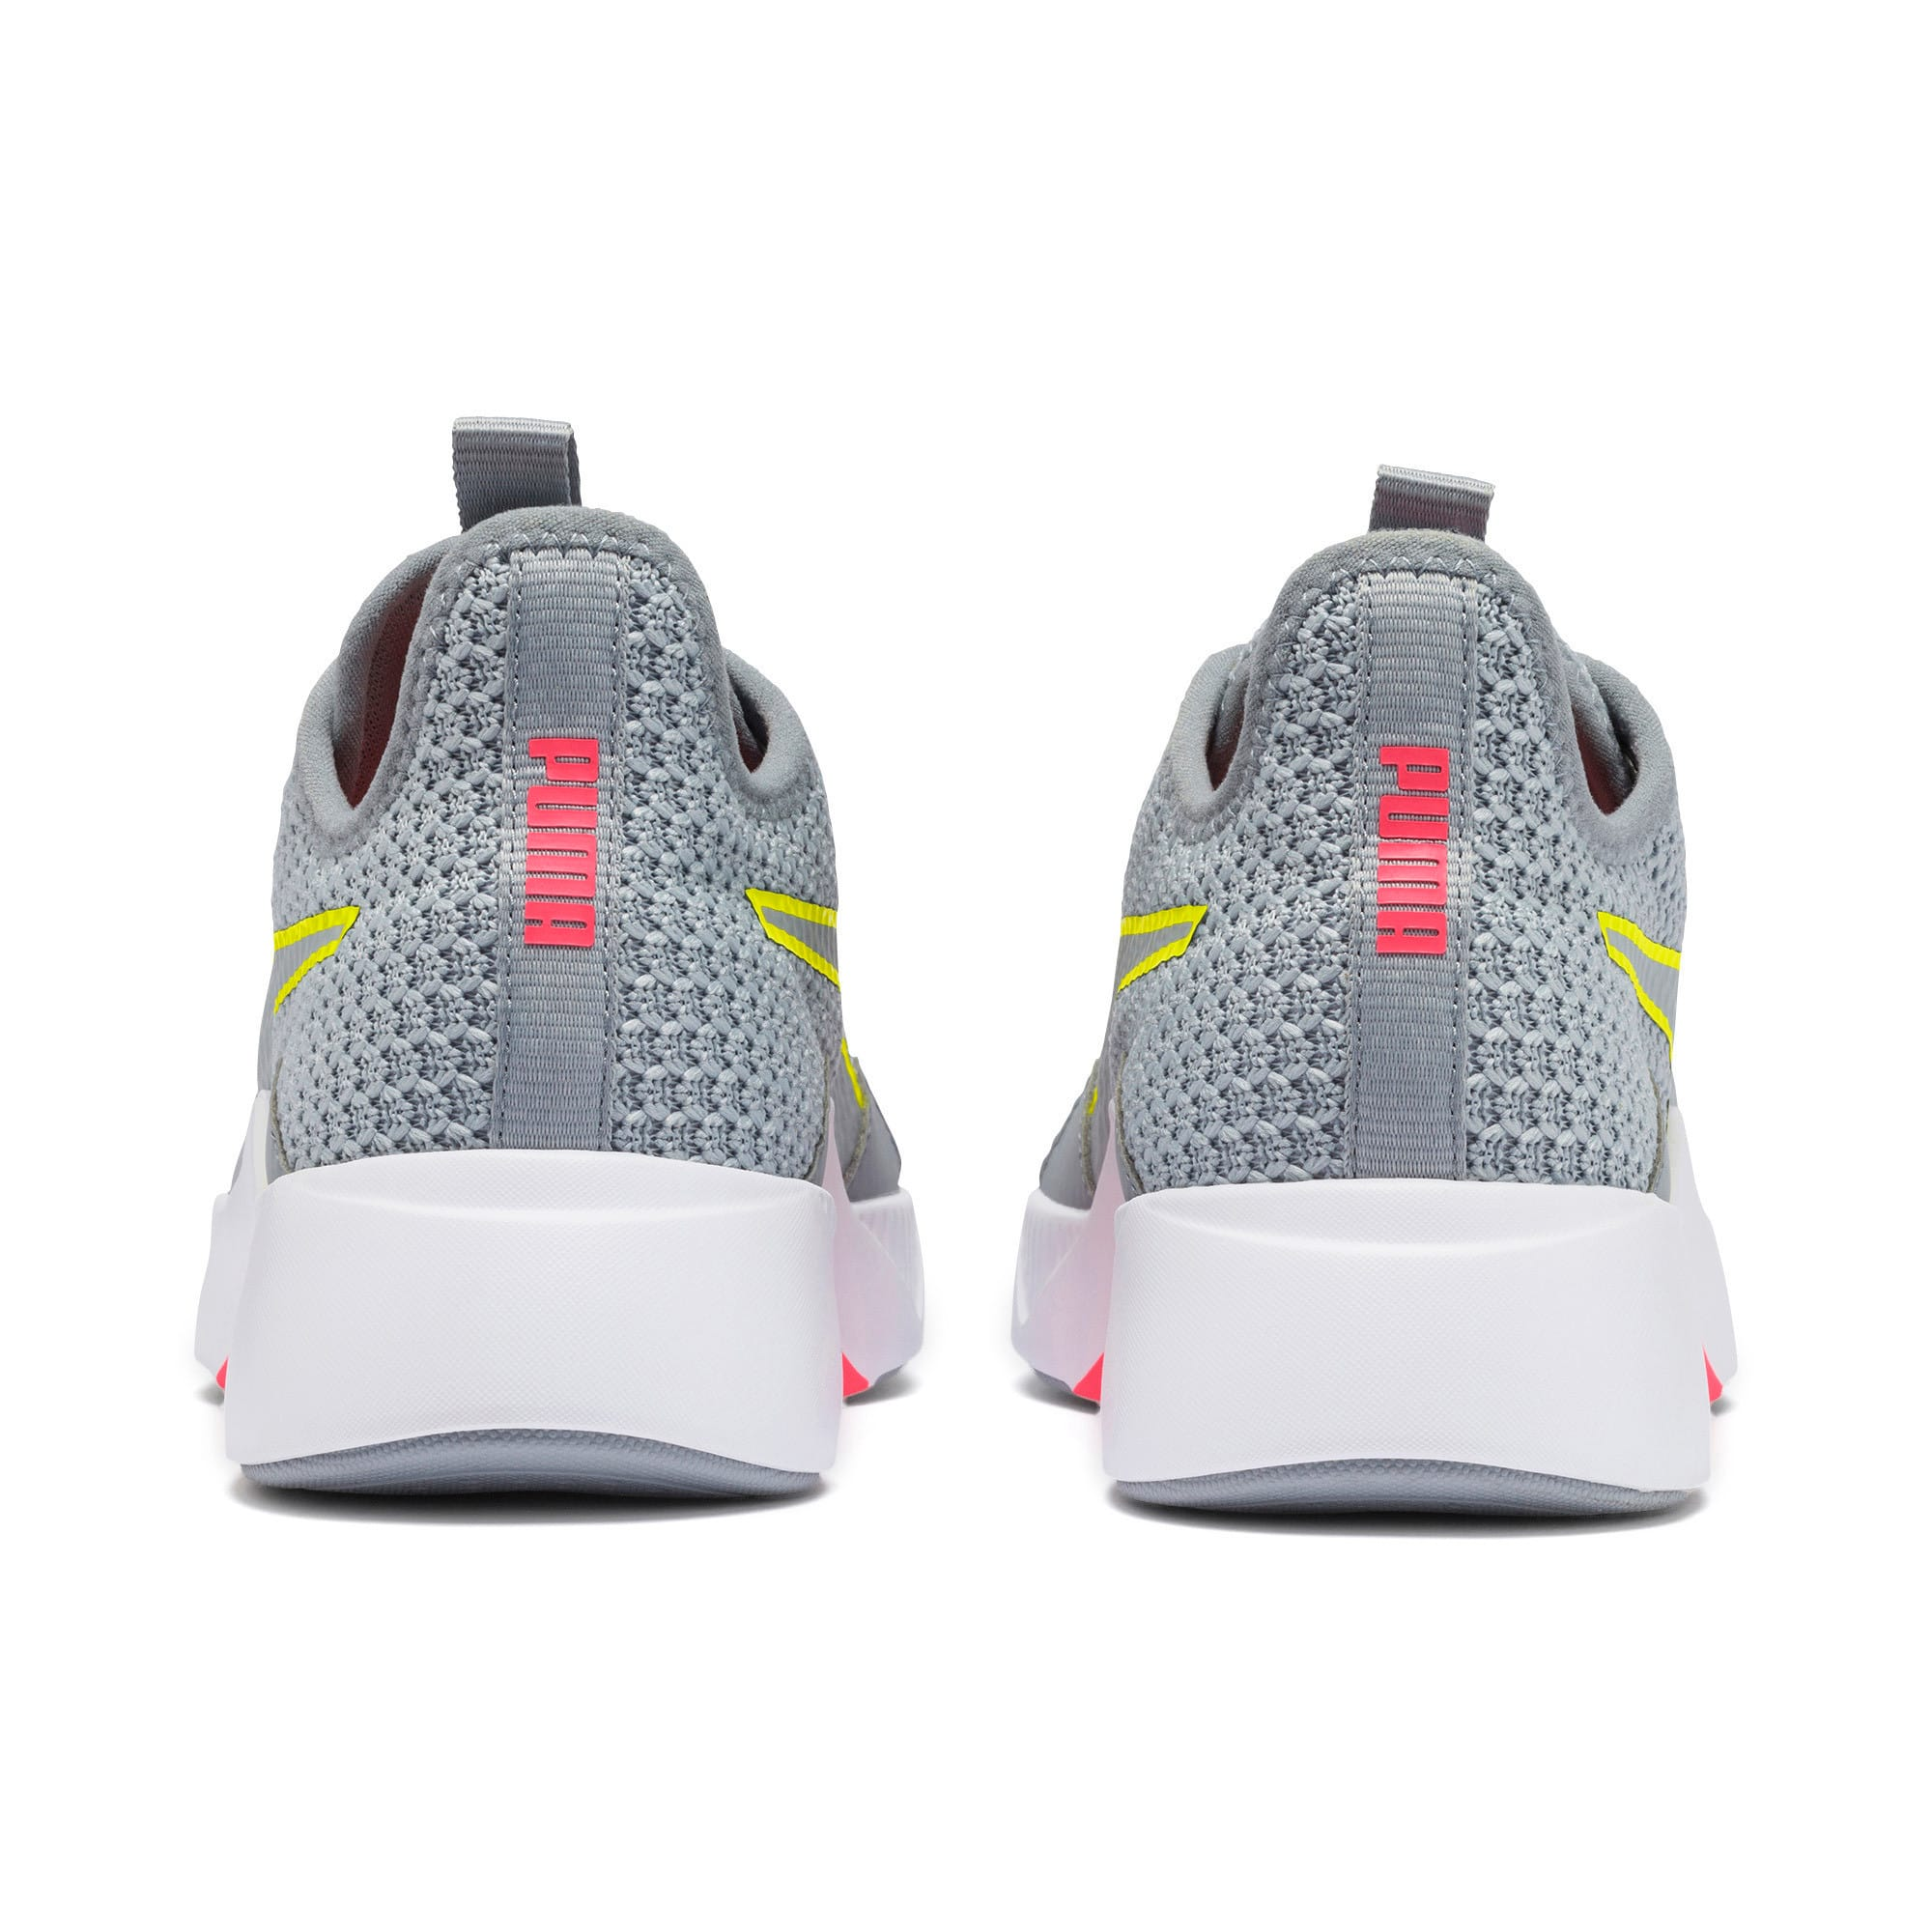 Thumbnail 6 of Incite FS Women's Trainers, Quarry-Yellow-Pink, medium-IND